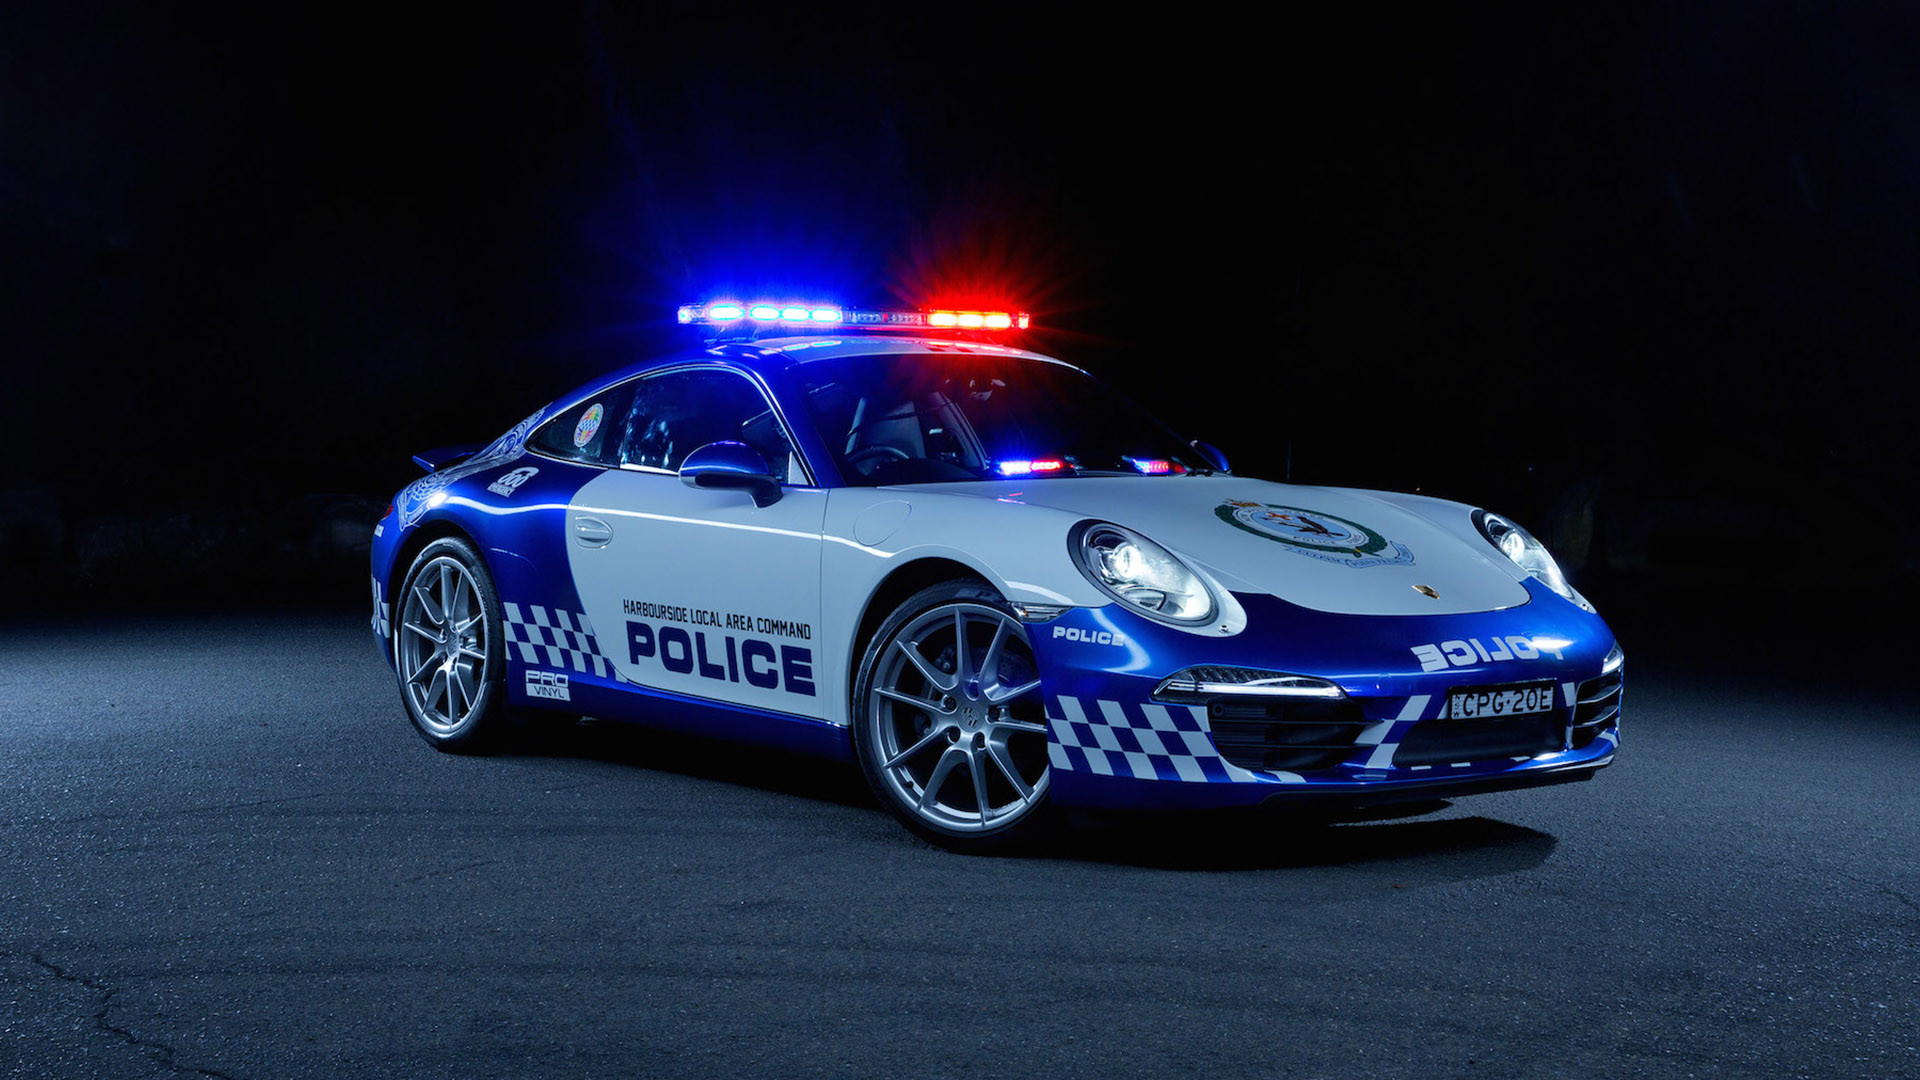 Res: 1920x1080, Police Car Wallpapers Widescreen